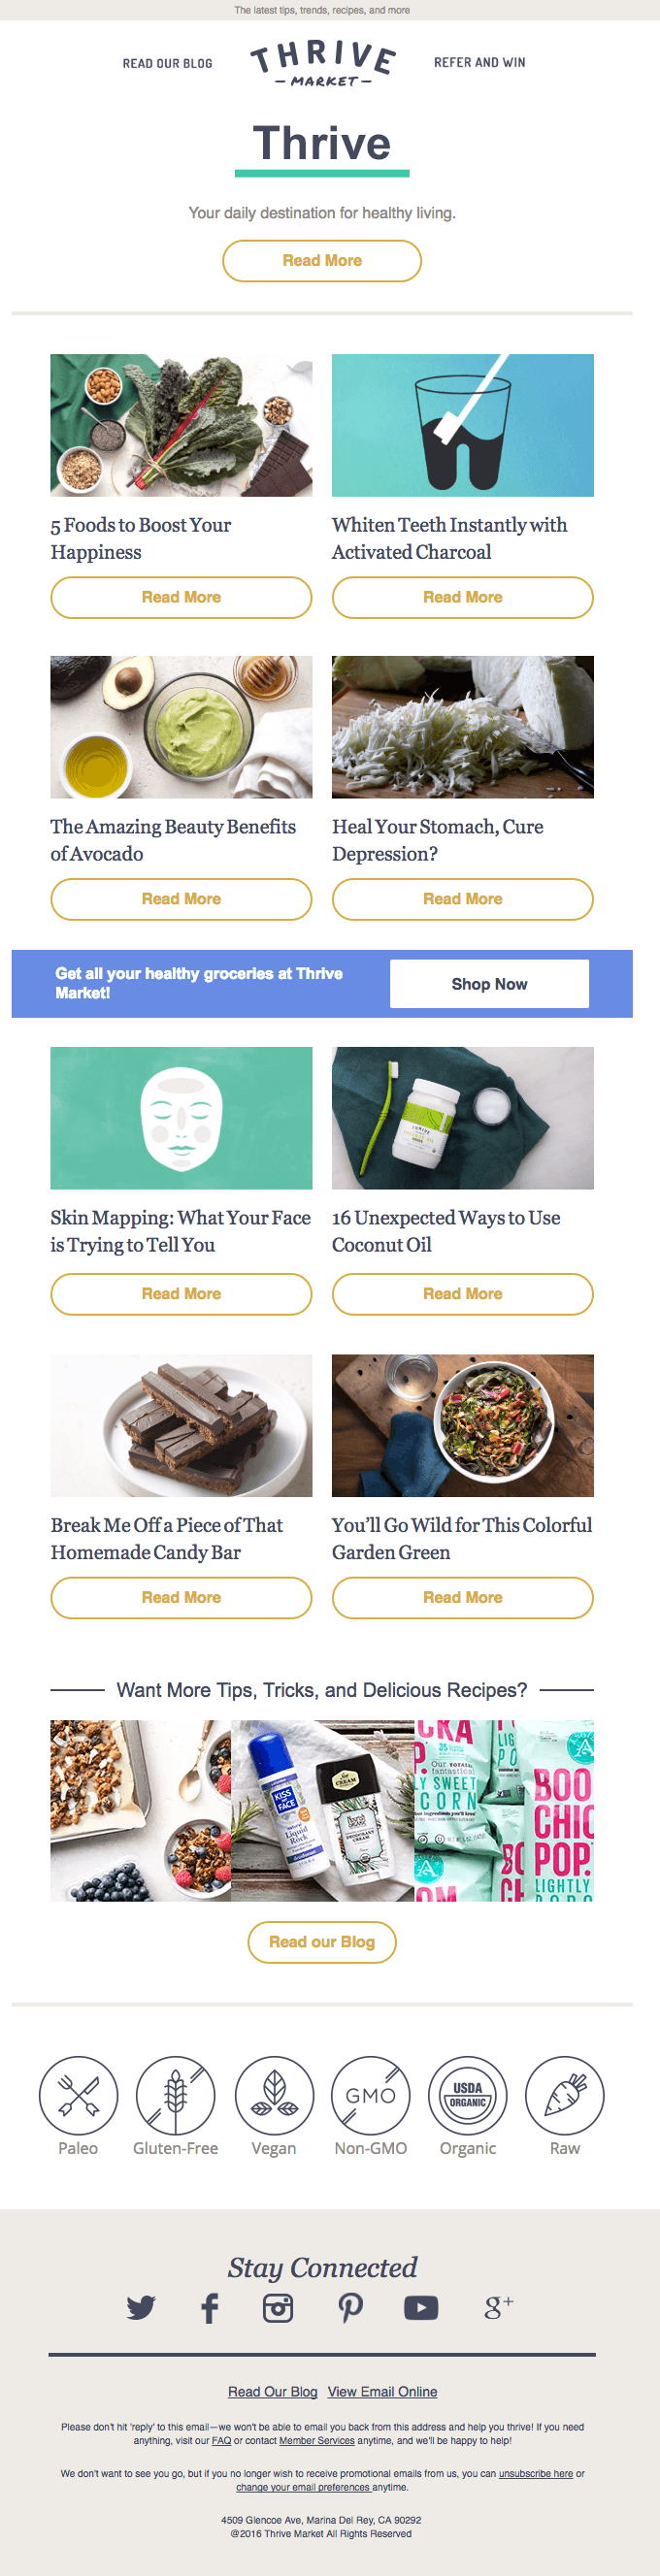 thrive market email newsletter blog posts click bait recipes food articles